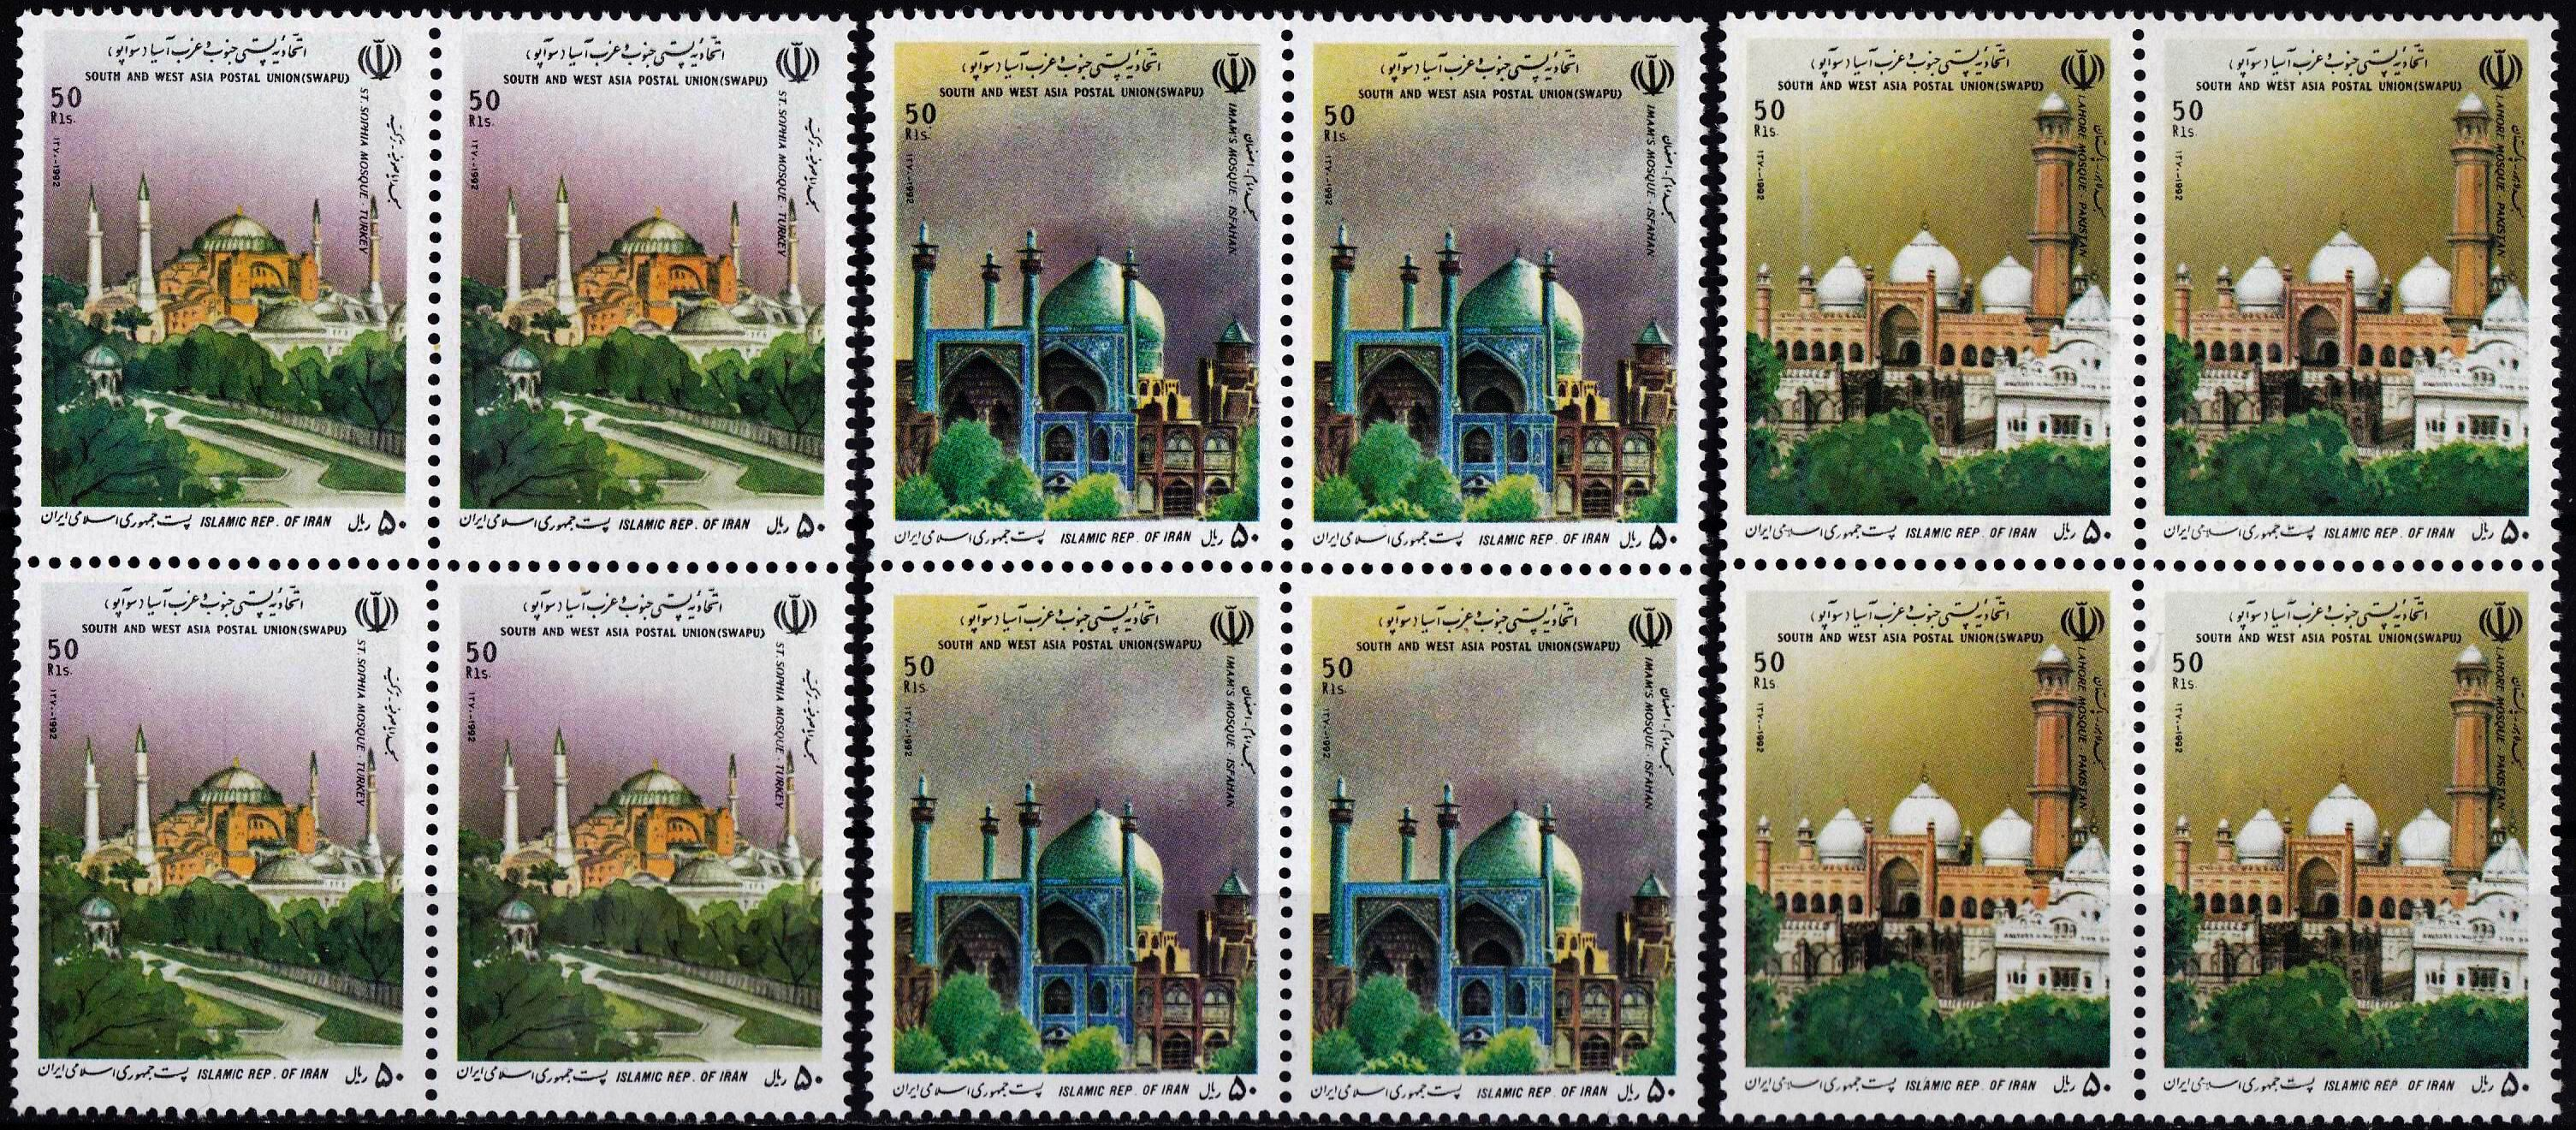 Iran 1992 Stamps Mosques Complete Set MNH